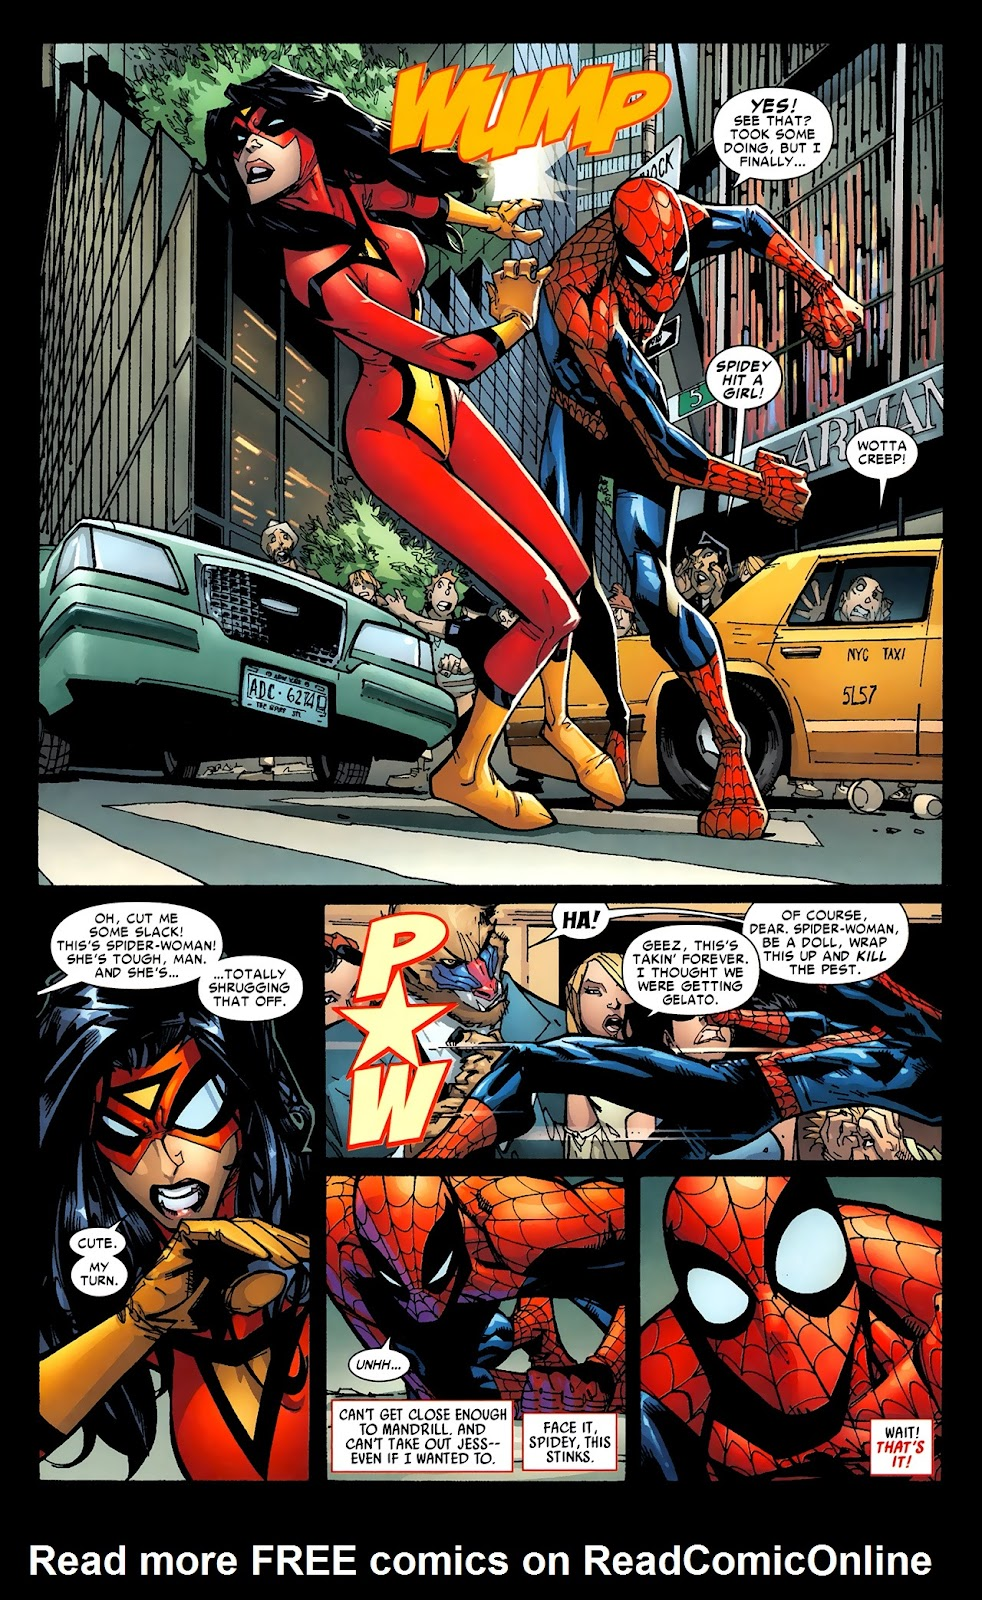 Read online Free Comic Book Day 2011 (Spider-Man) comic -  Issue # Full - 9